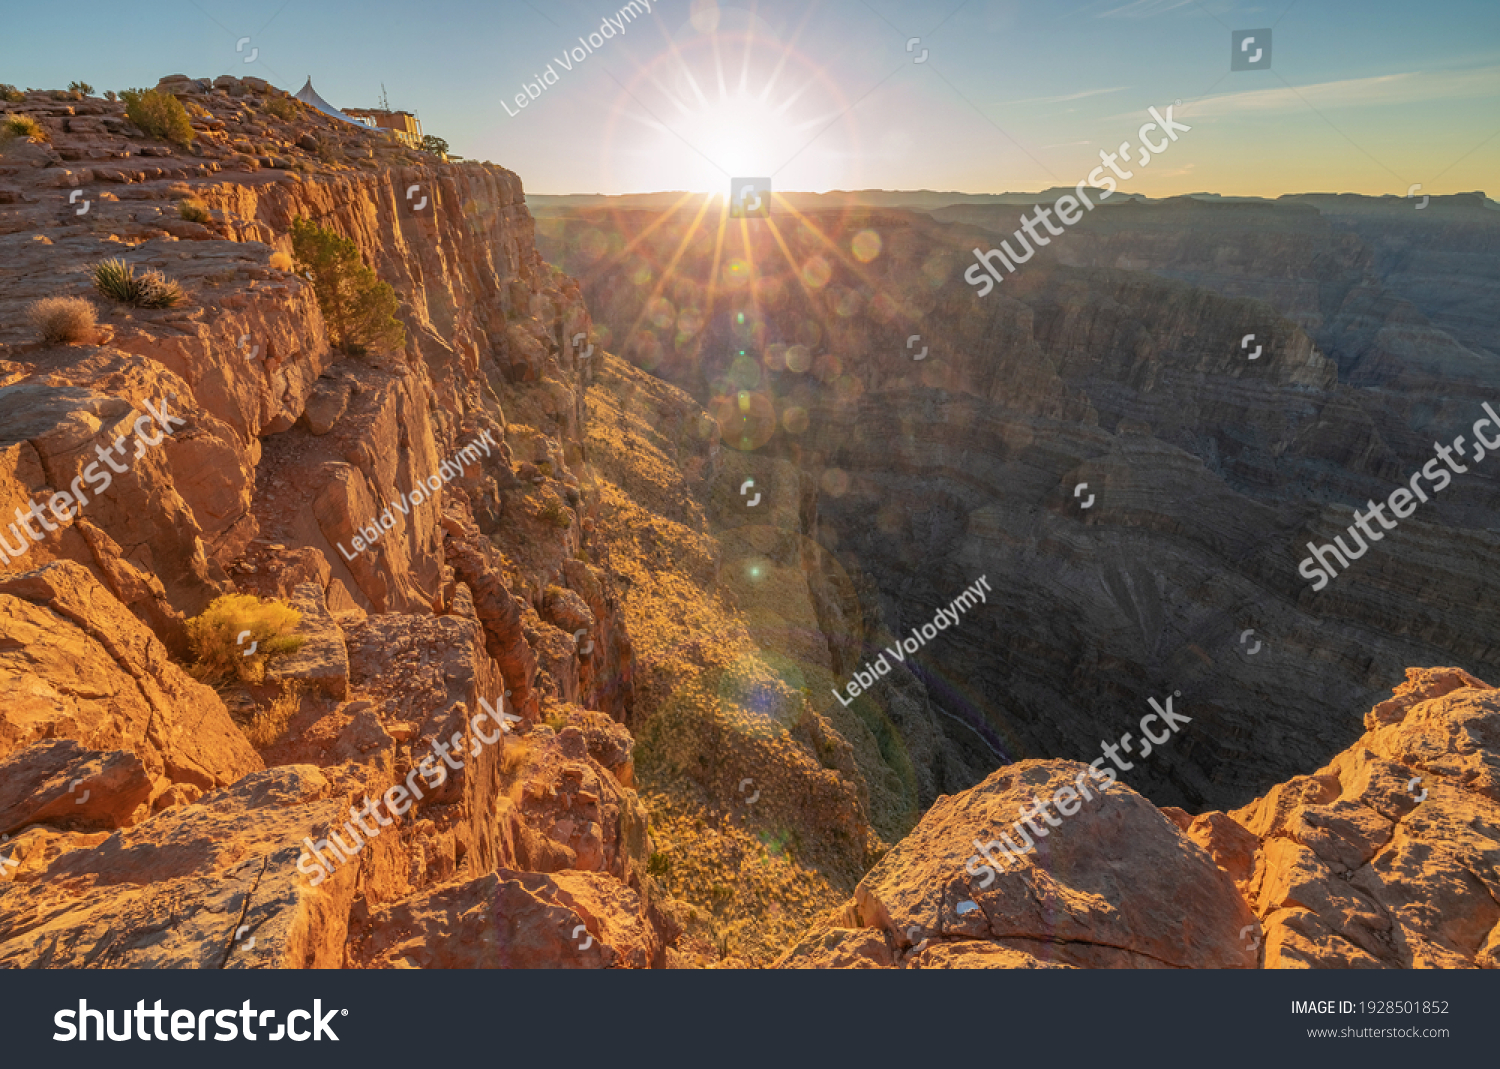 Beautiful landscapes of the Grand Canyon, an amazing view of the sunset over the red-orange rocks that are millions of years old. USA, Arizona. #1928501852